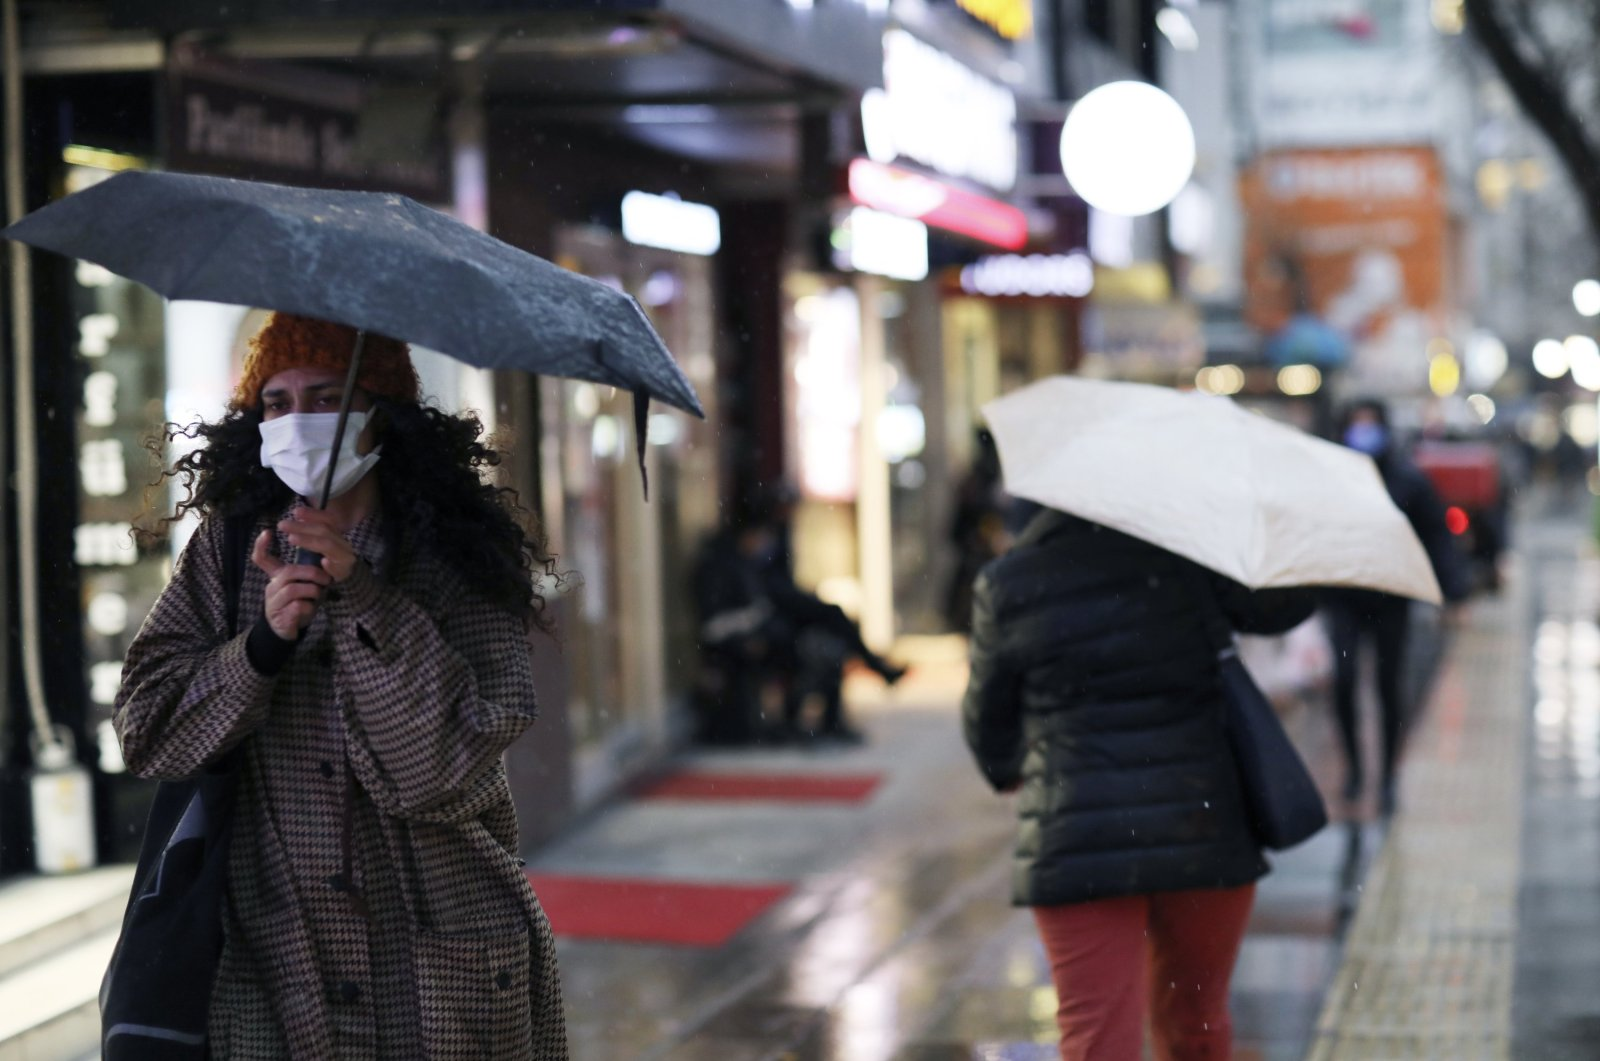 A woman with a face mask walks in the rain on a street, in Ankara, Turkey, on March 16, 2021. (AP File Photo)